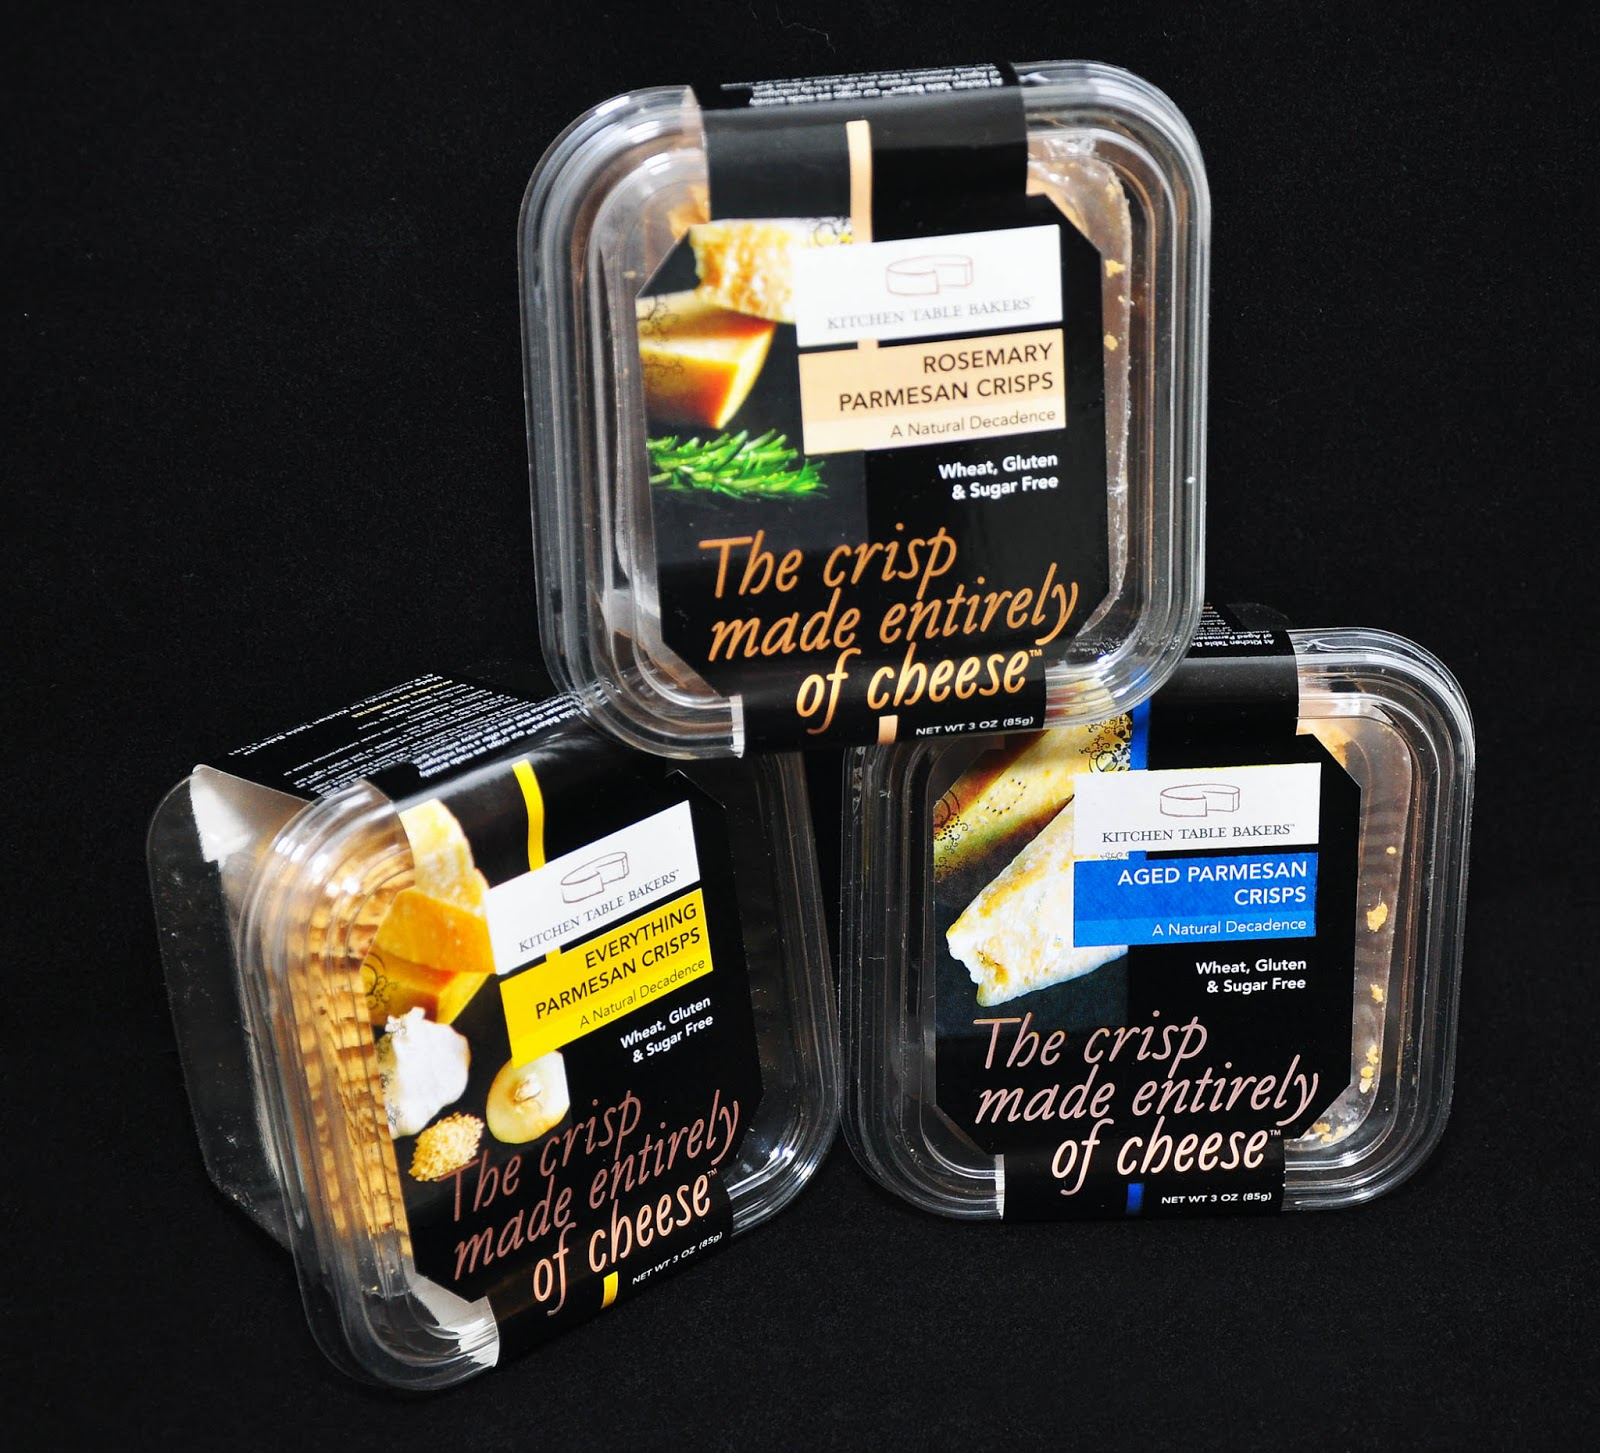 winter fancy food show brands and trends kitchen table bakers Kitchen Table Bakers came up with a genius invention of The crisp made entirely of cheese that comes in different flavors like Aged Parmesan Crisps